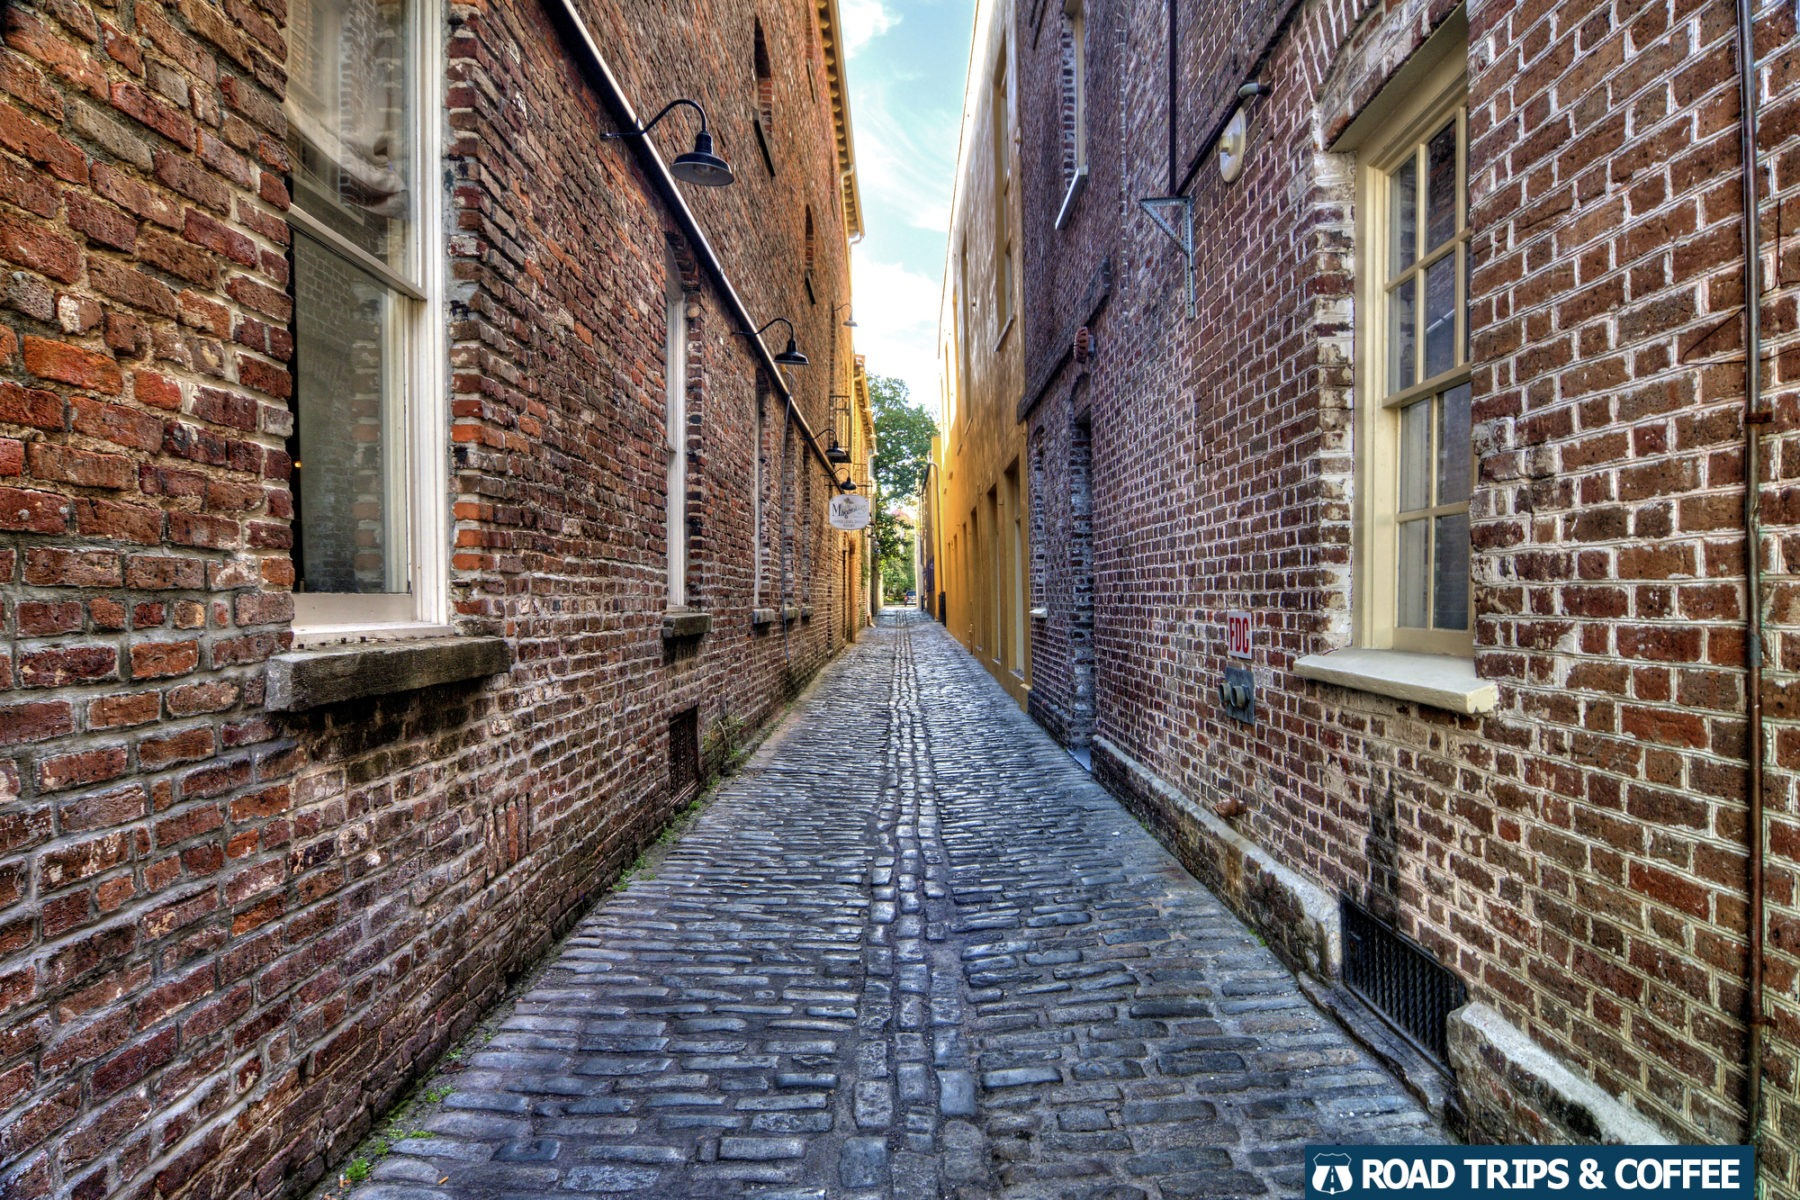 A long cobblestone alley in downtown Charleston, South Carolina